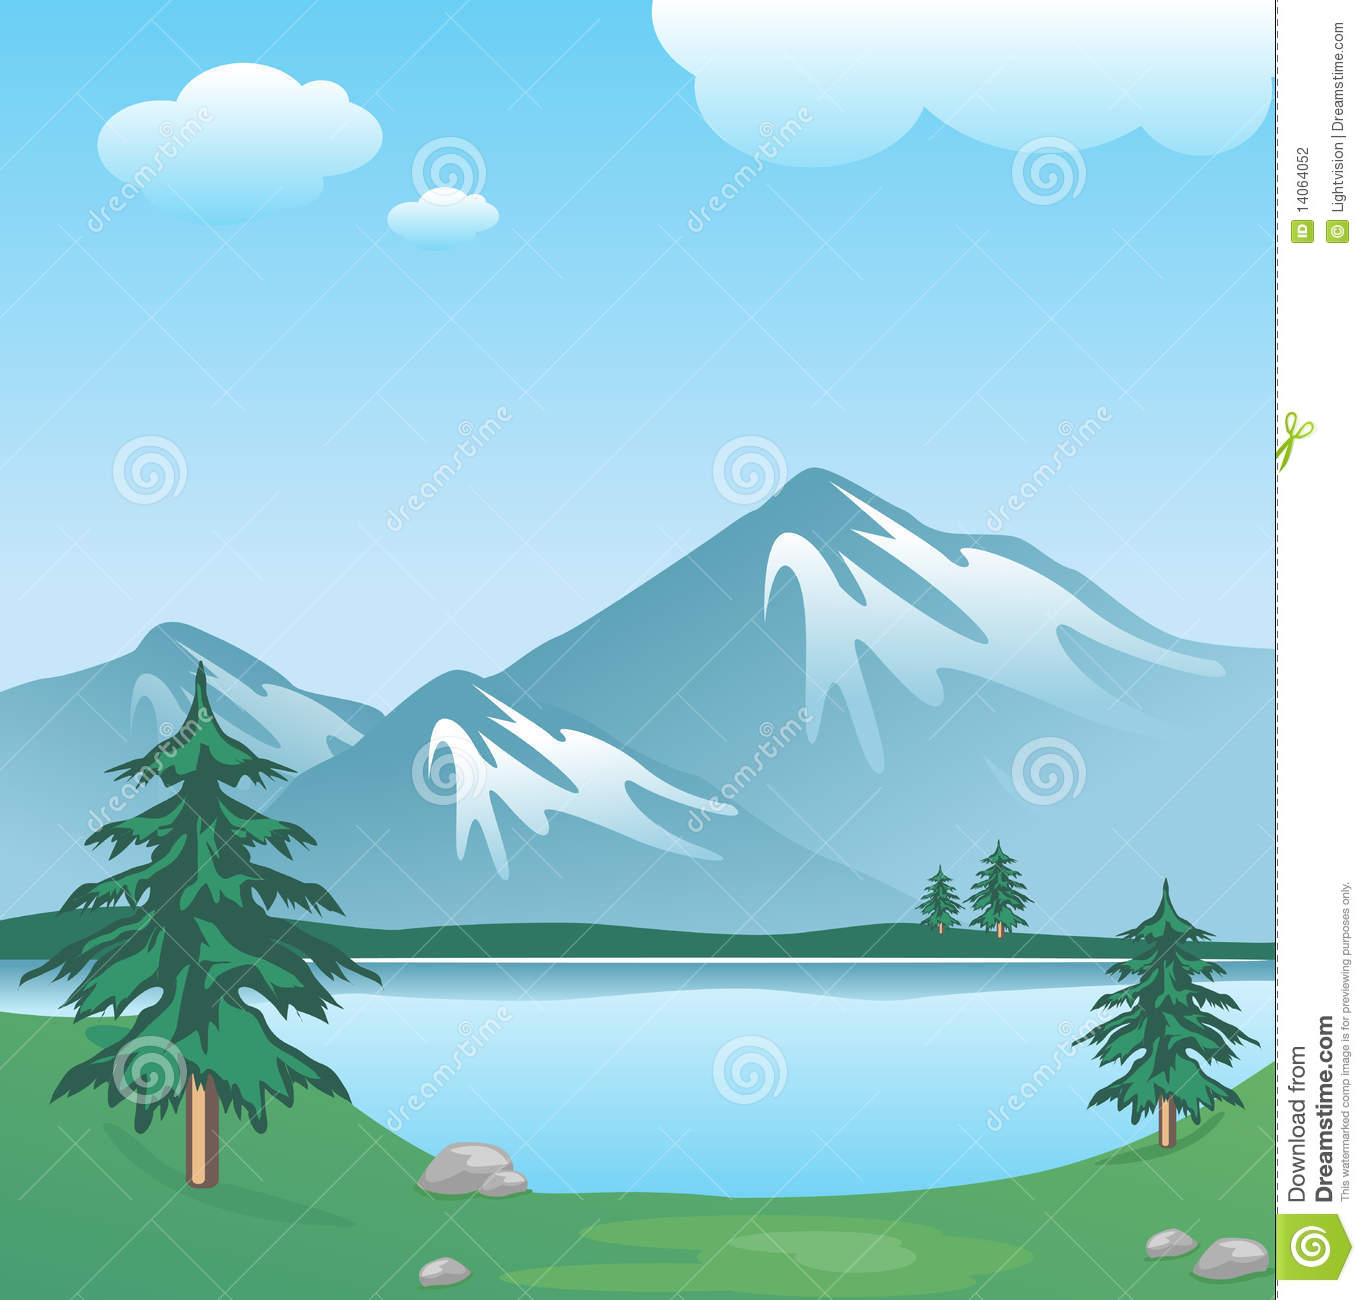 Snowy Mountain Peak Stock Illustrations  1475 Snowy